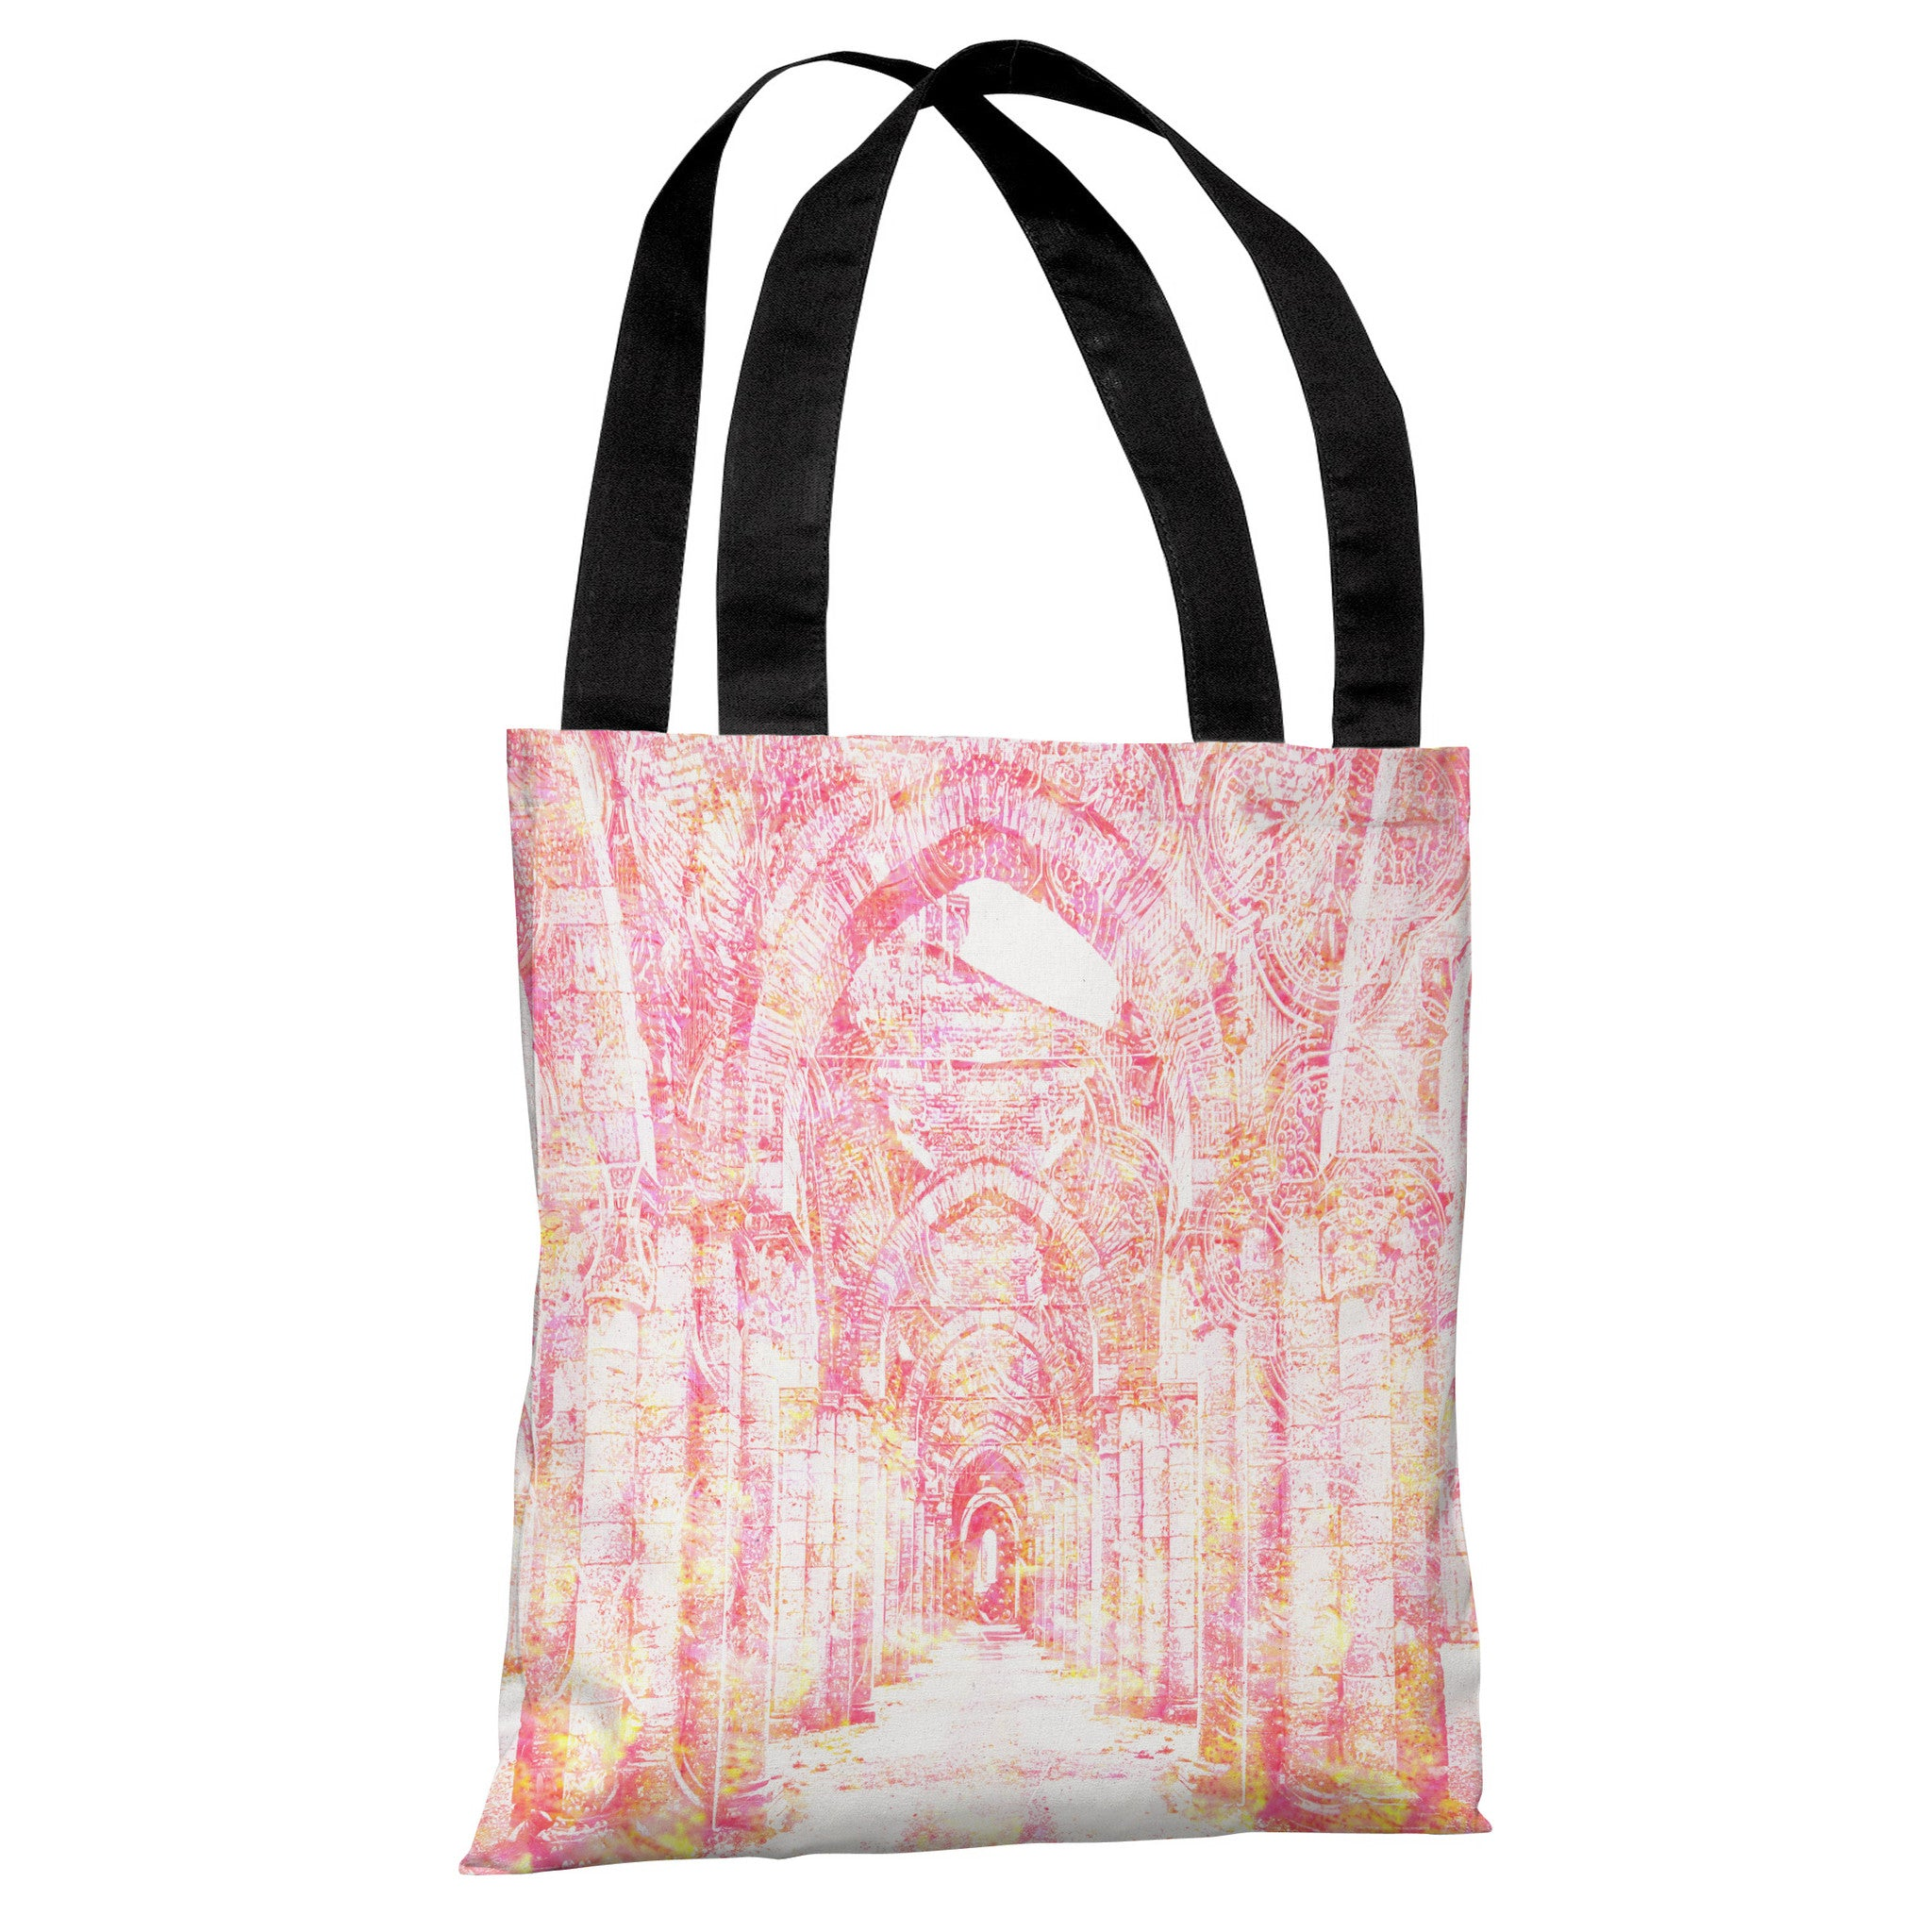 Corridor - White Pink Tote Bag by OBC